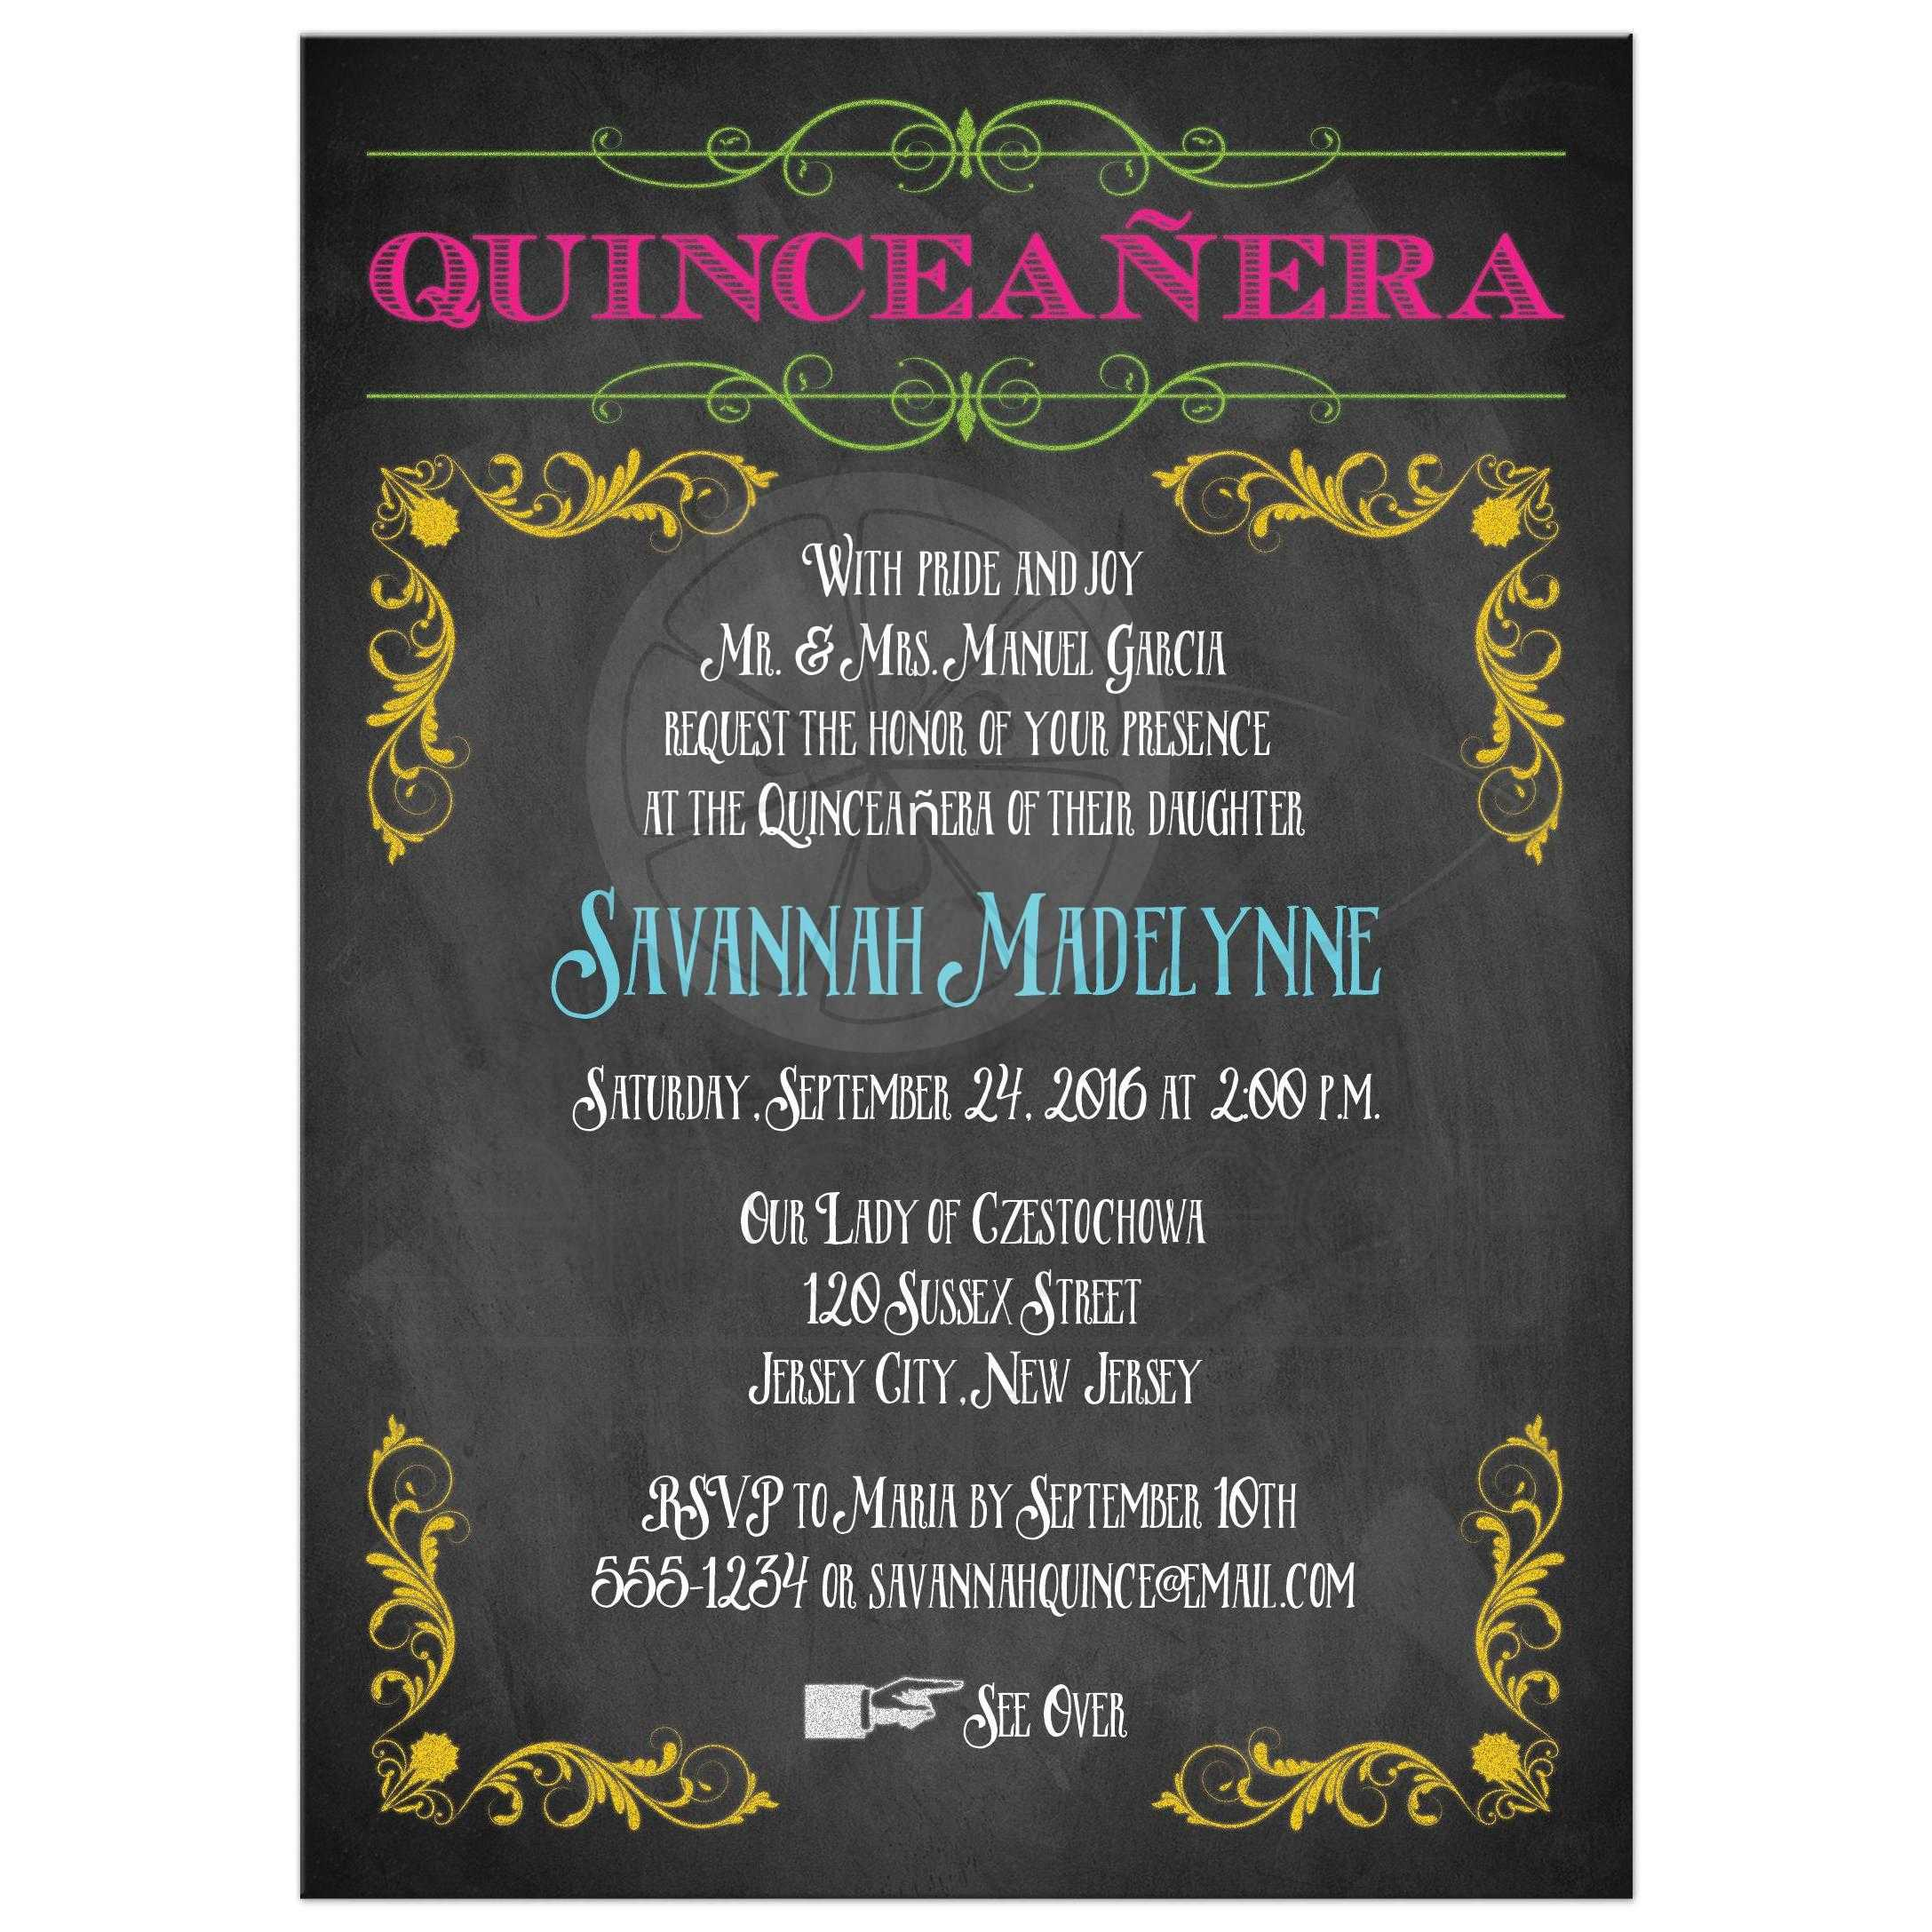 Quinceanera Invitation | Neon Chalkboard | Vintage Scrolls and ...